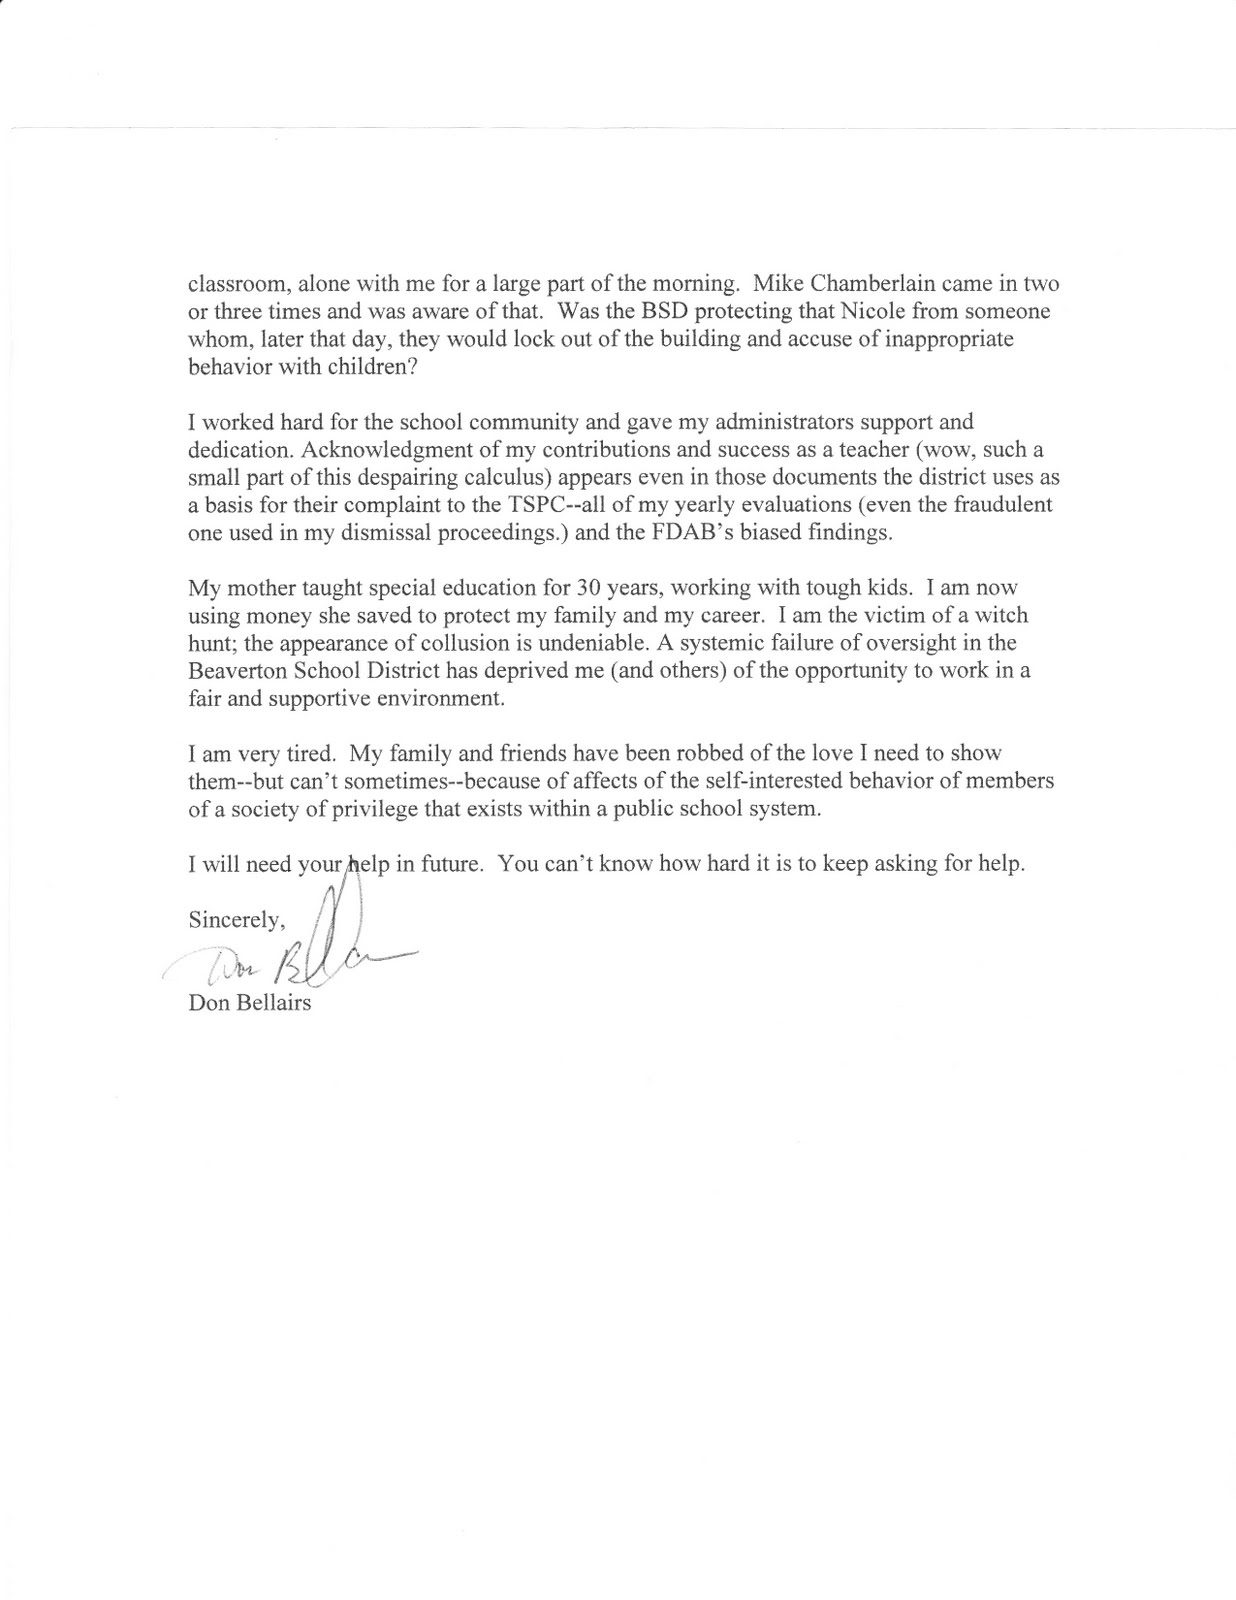 District Attorney Investigator Cover Letter | Teaching In The Shadow ...